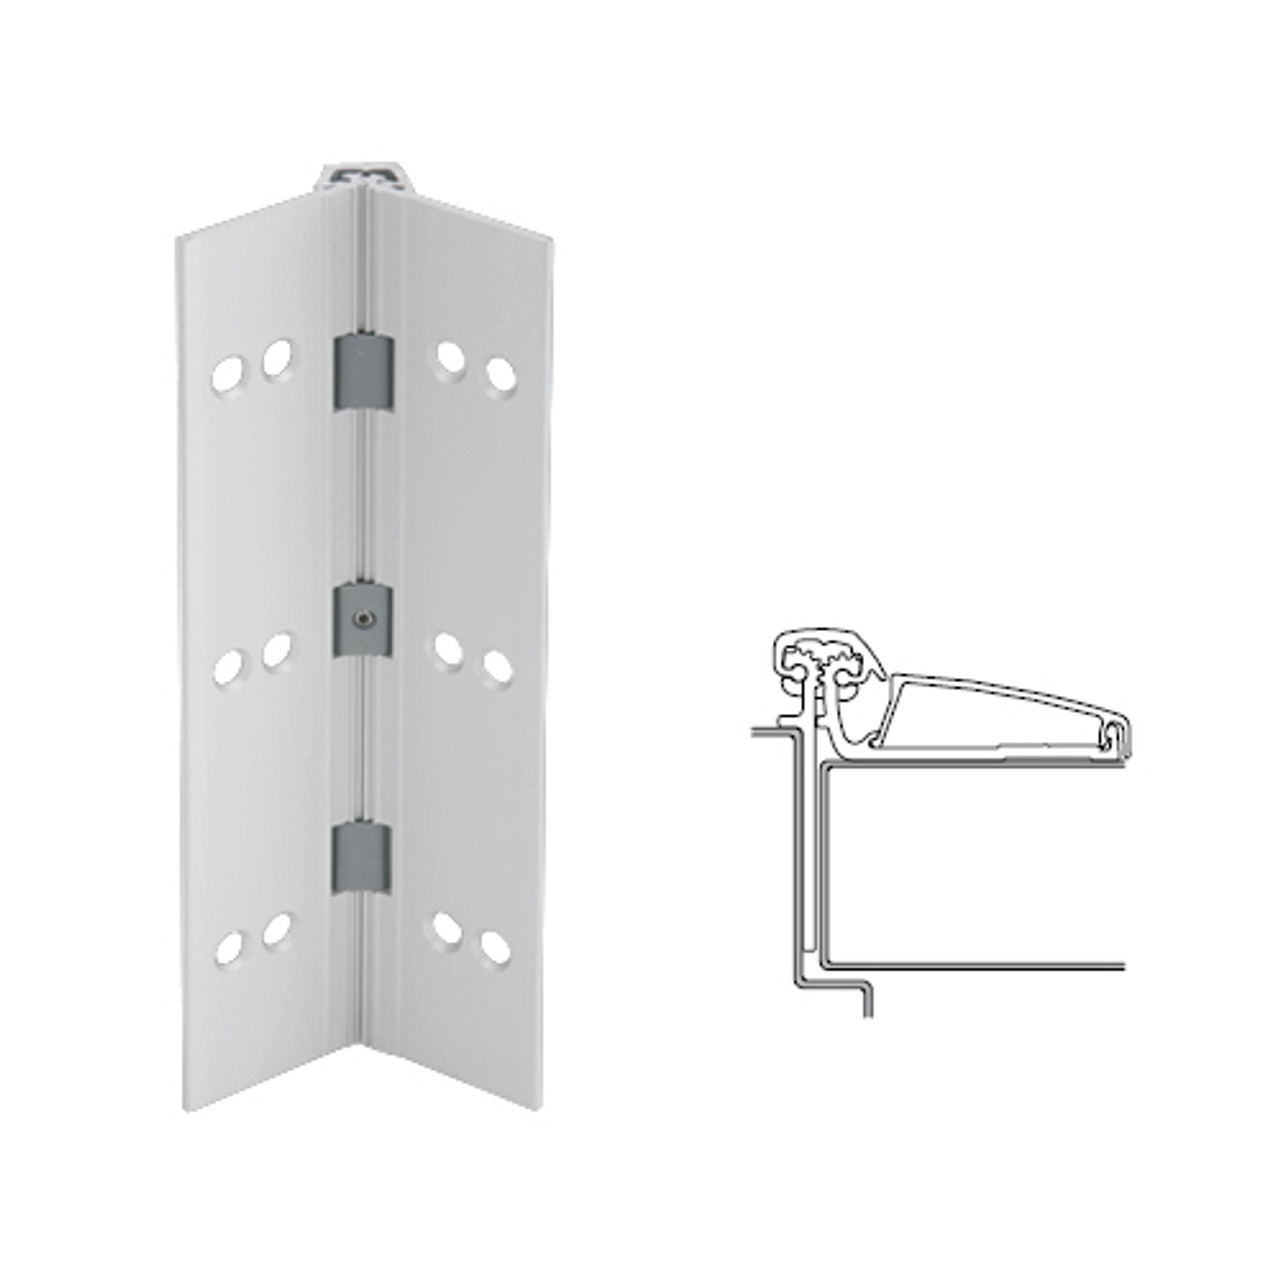 046XY-US28-95-SECWDHM IVES Adjustable Half Surface Continuous Geared Hinges with Security Screws - Hex Pin Drive in Satin Aluminum